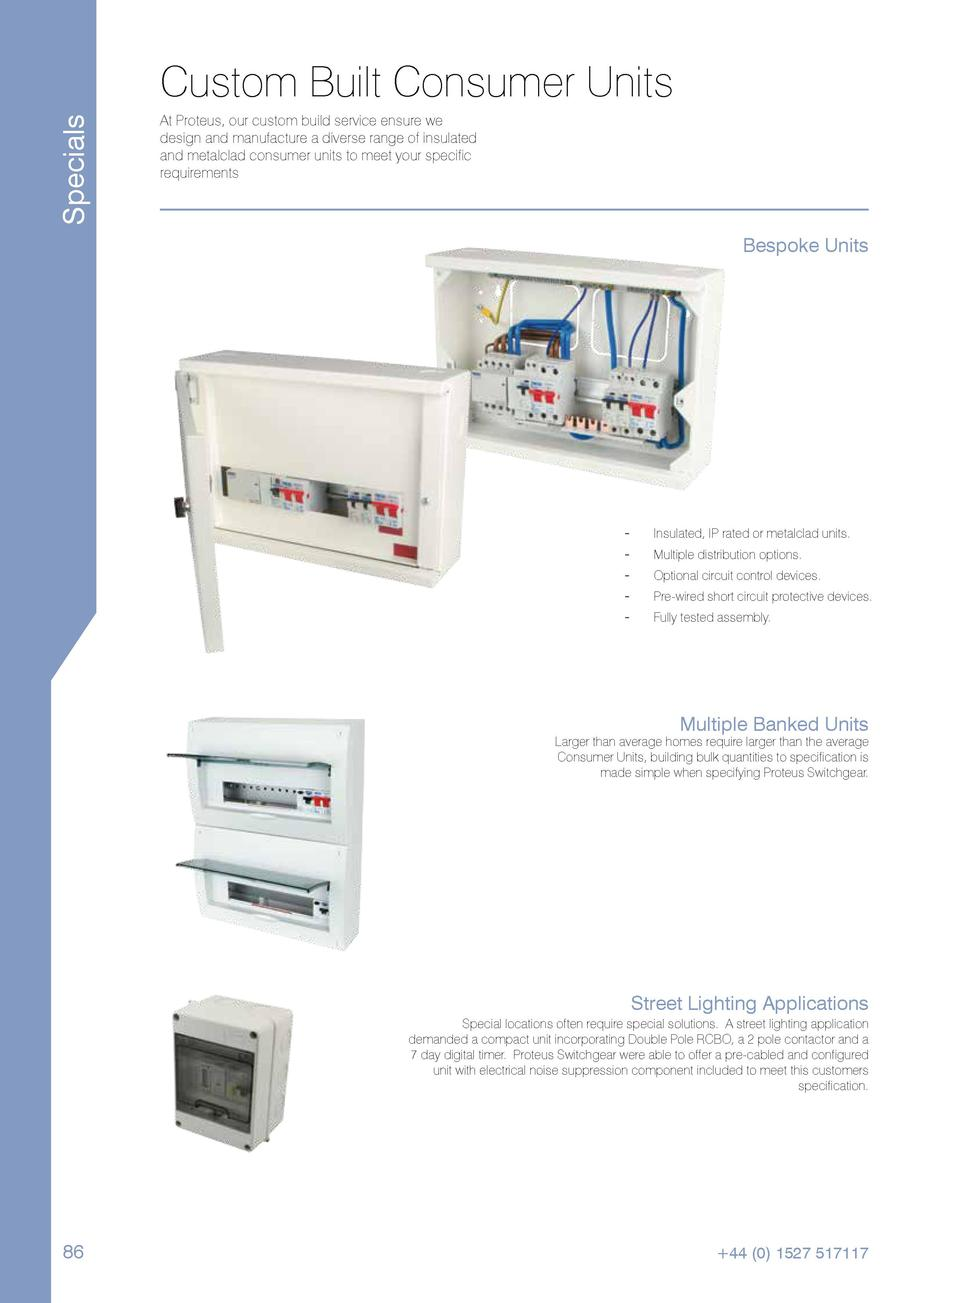 Specials  Custom Built Consumer Units At Proteus, our custom build service ensure we design and manufacture a diverse rang...